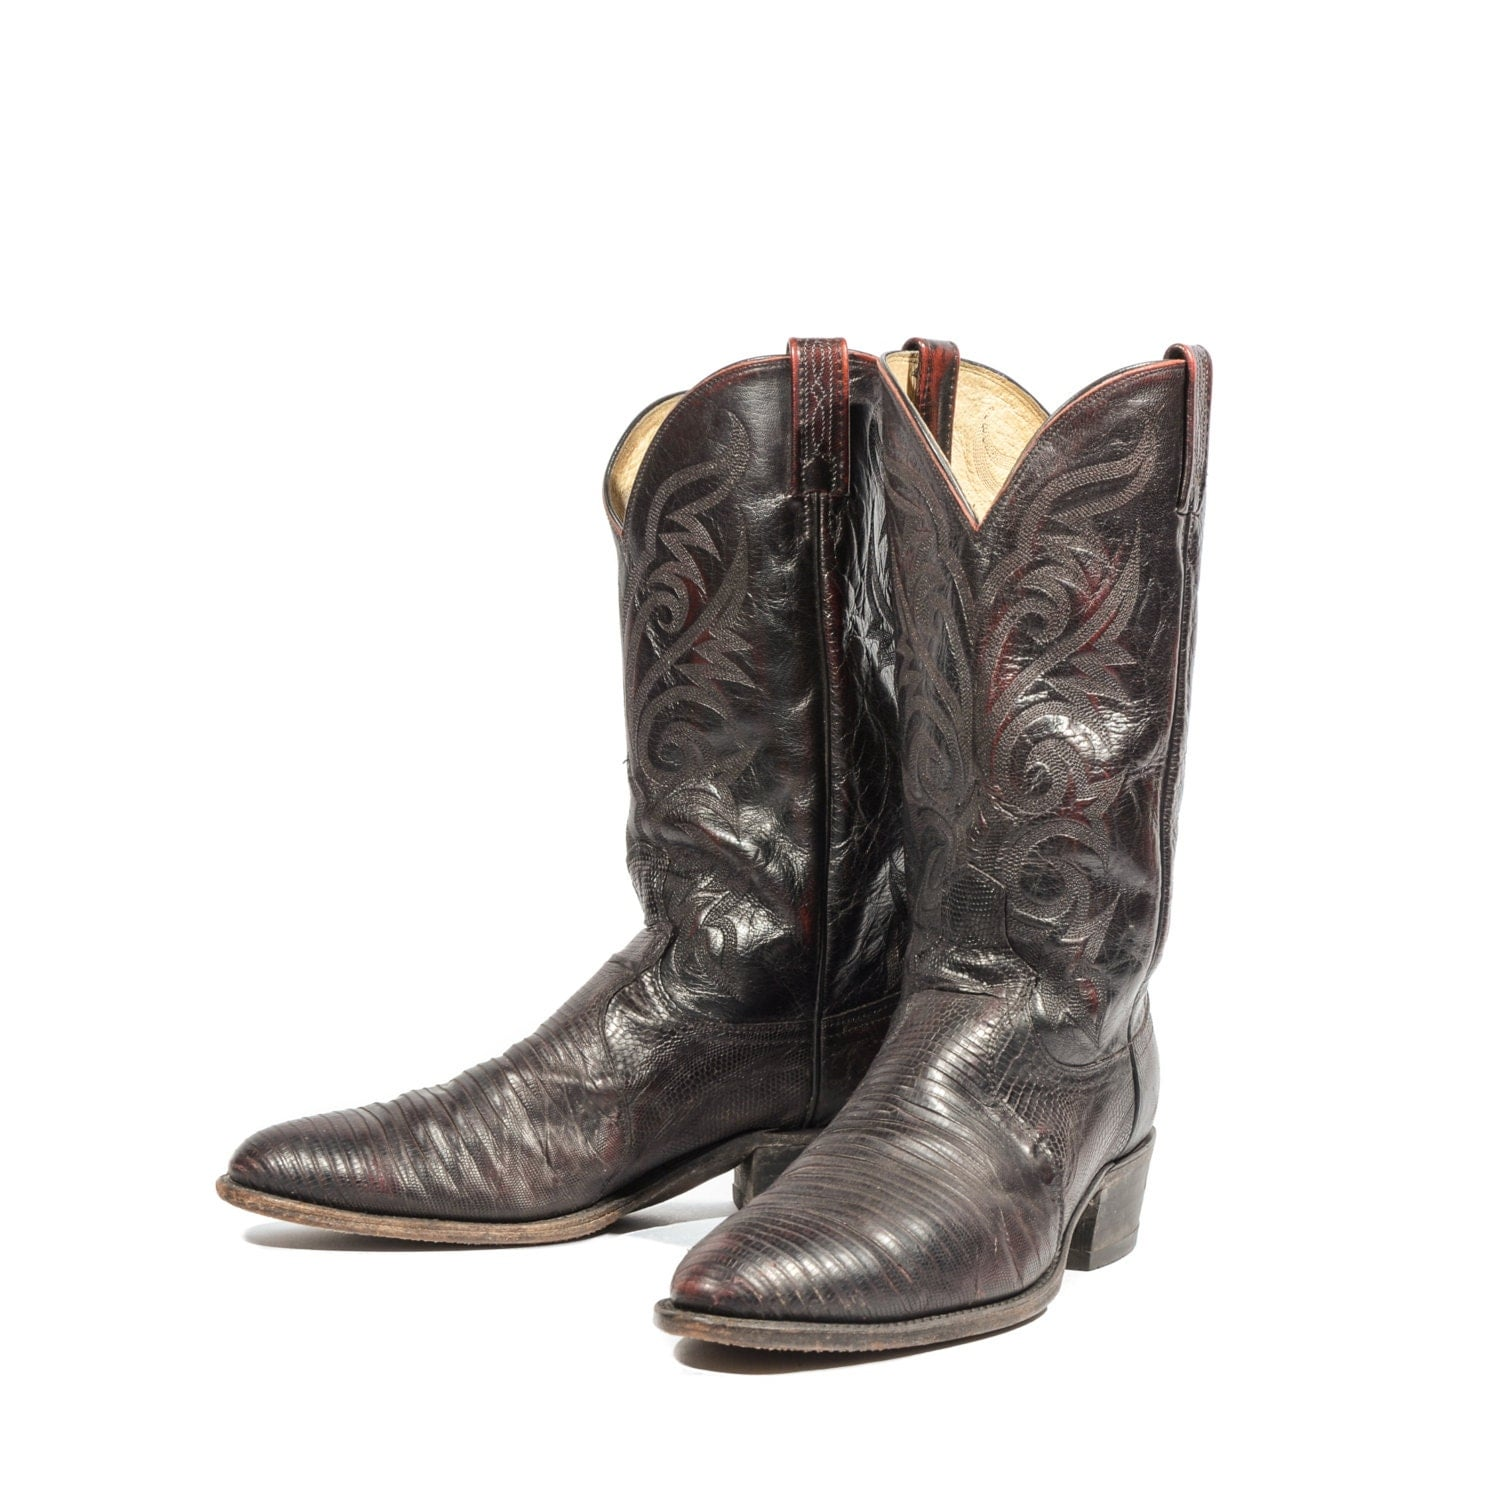 dan post oxblood lizard cowboy boots western fashion boot